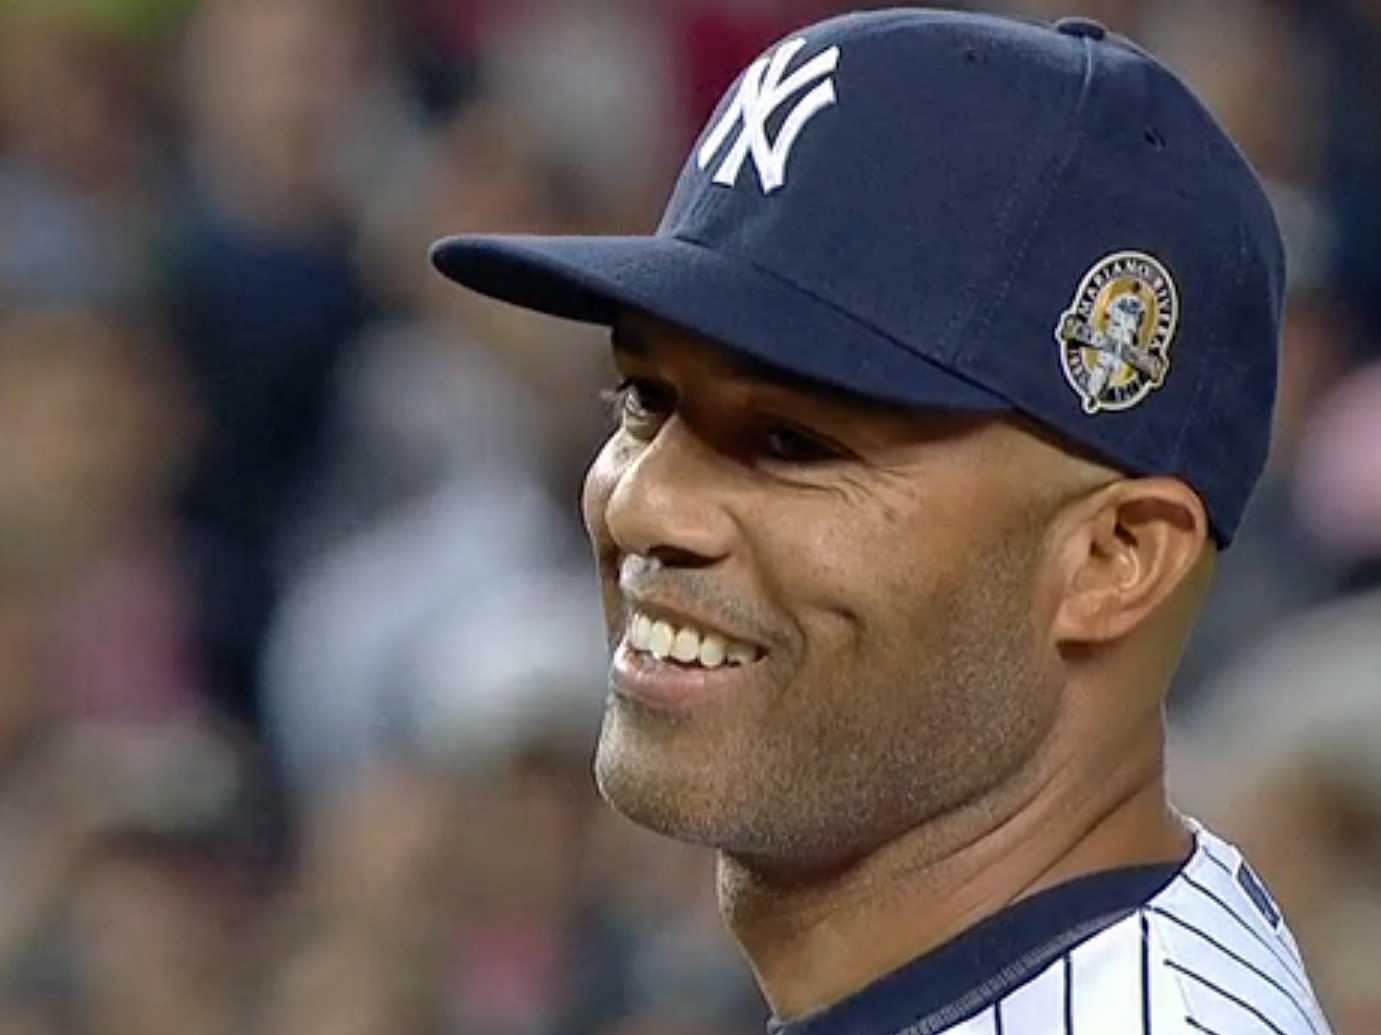 Mariano Rivera's Final Yankee Stadium Appearance In One GIF ...